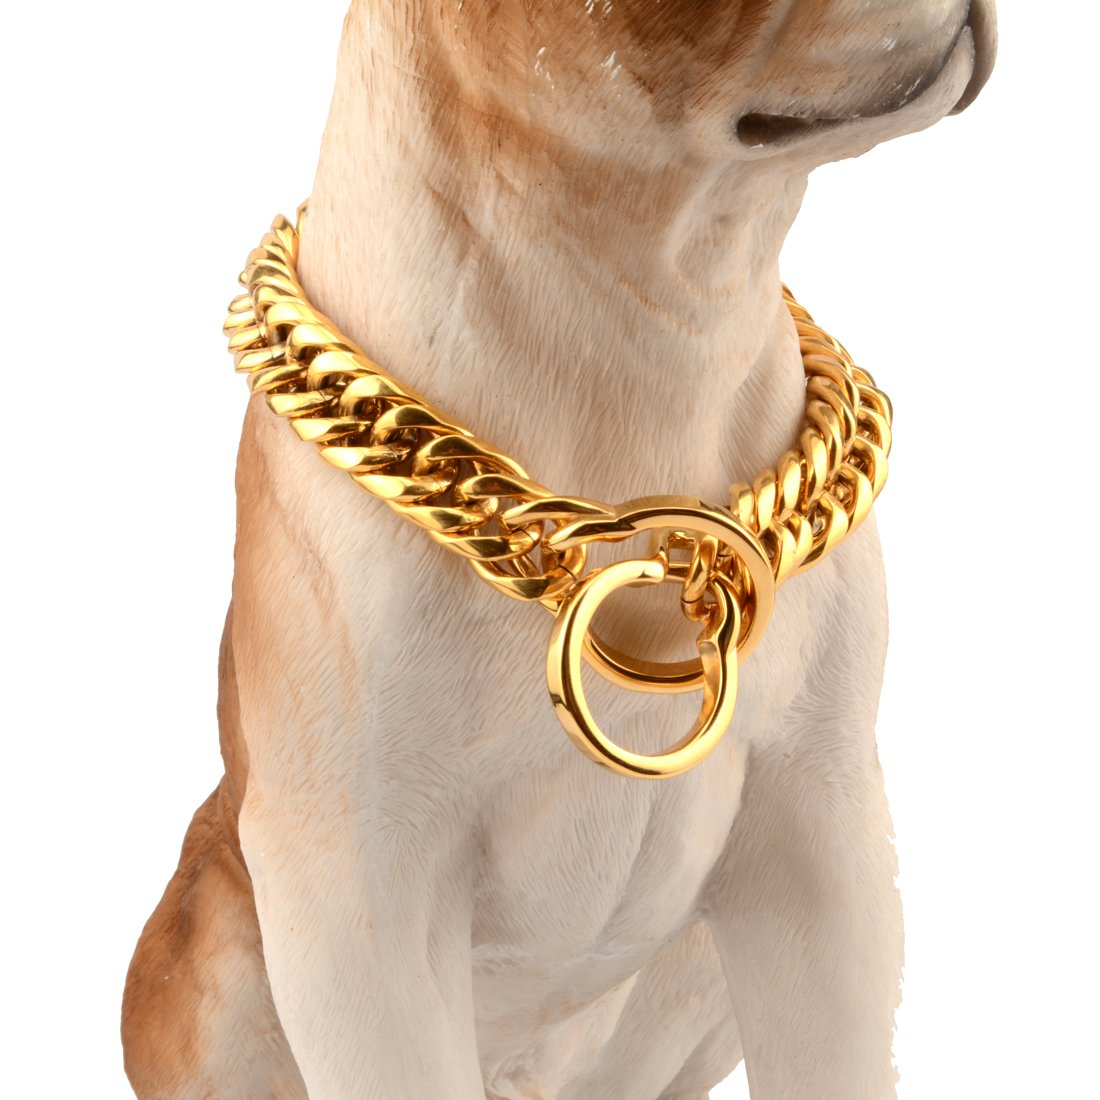 Jewelry Kingdom 1 Heavy Gold Plated Designer Strong Pitbull Dog Collar 16/18mm Wide Stainless Steel Curb Link Chain,14-34inches (18mm Wide, 28inch)